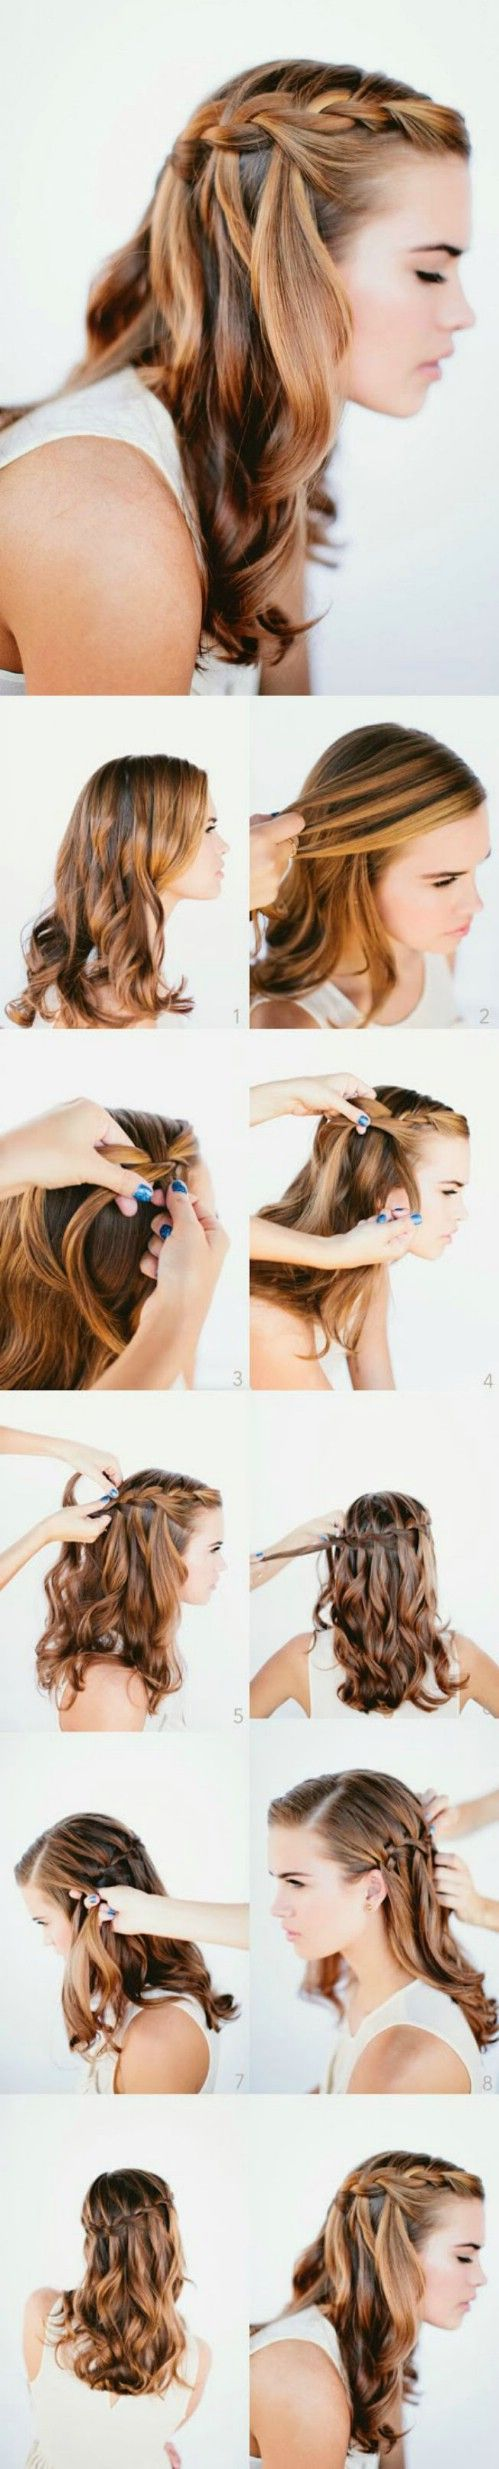 Follow This Step By Step Tutorial To Get The Perfect waterfall braid! - Page 3 of 7 - Where Fashion Meets Passion